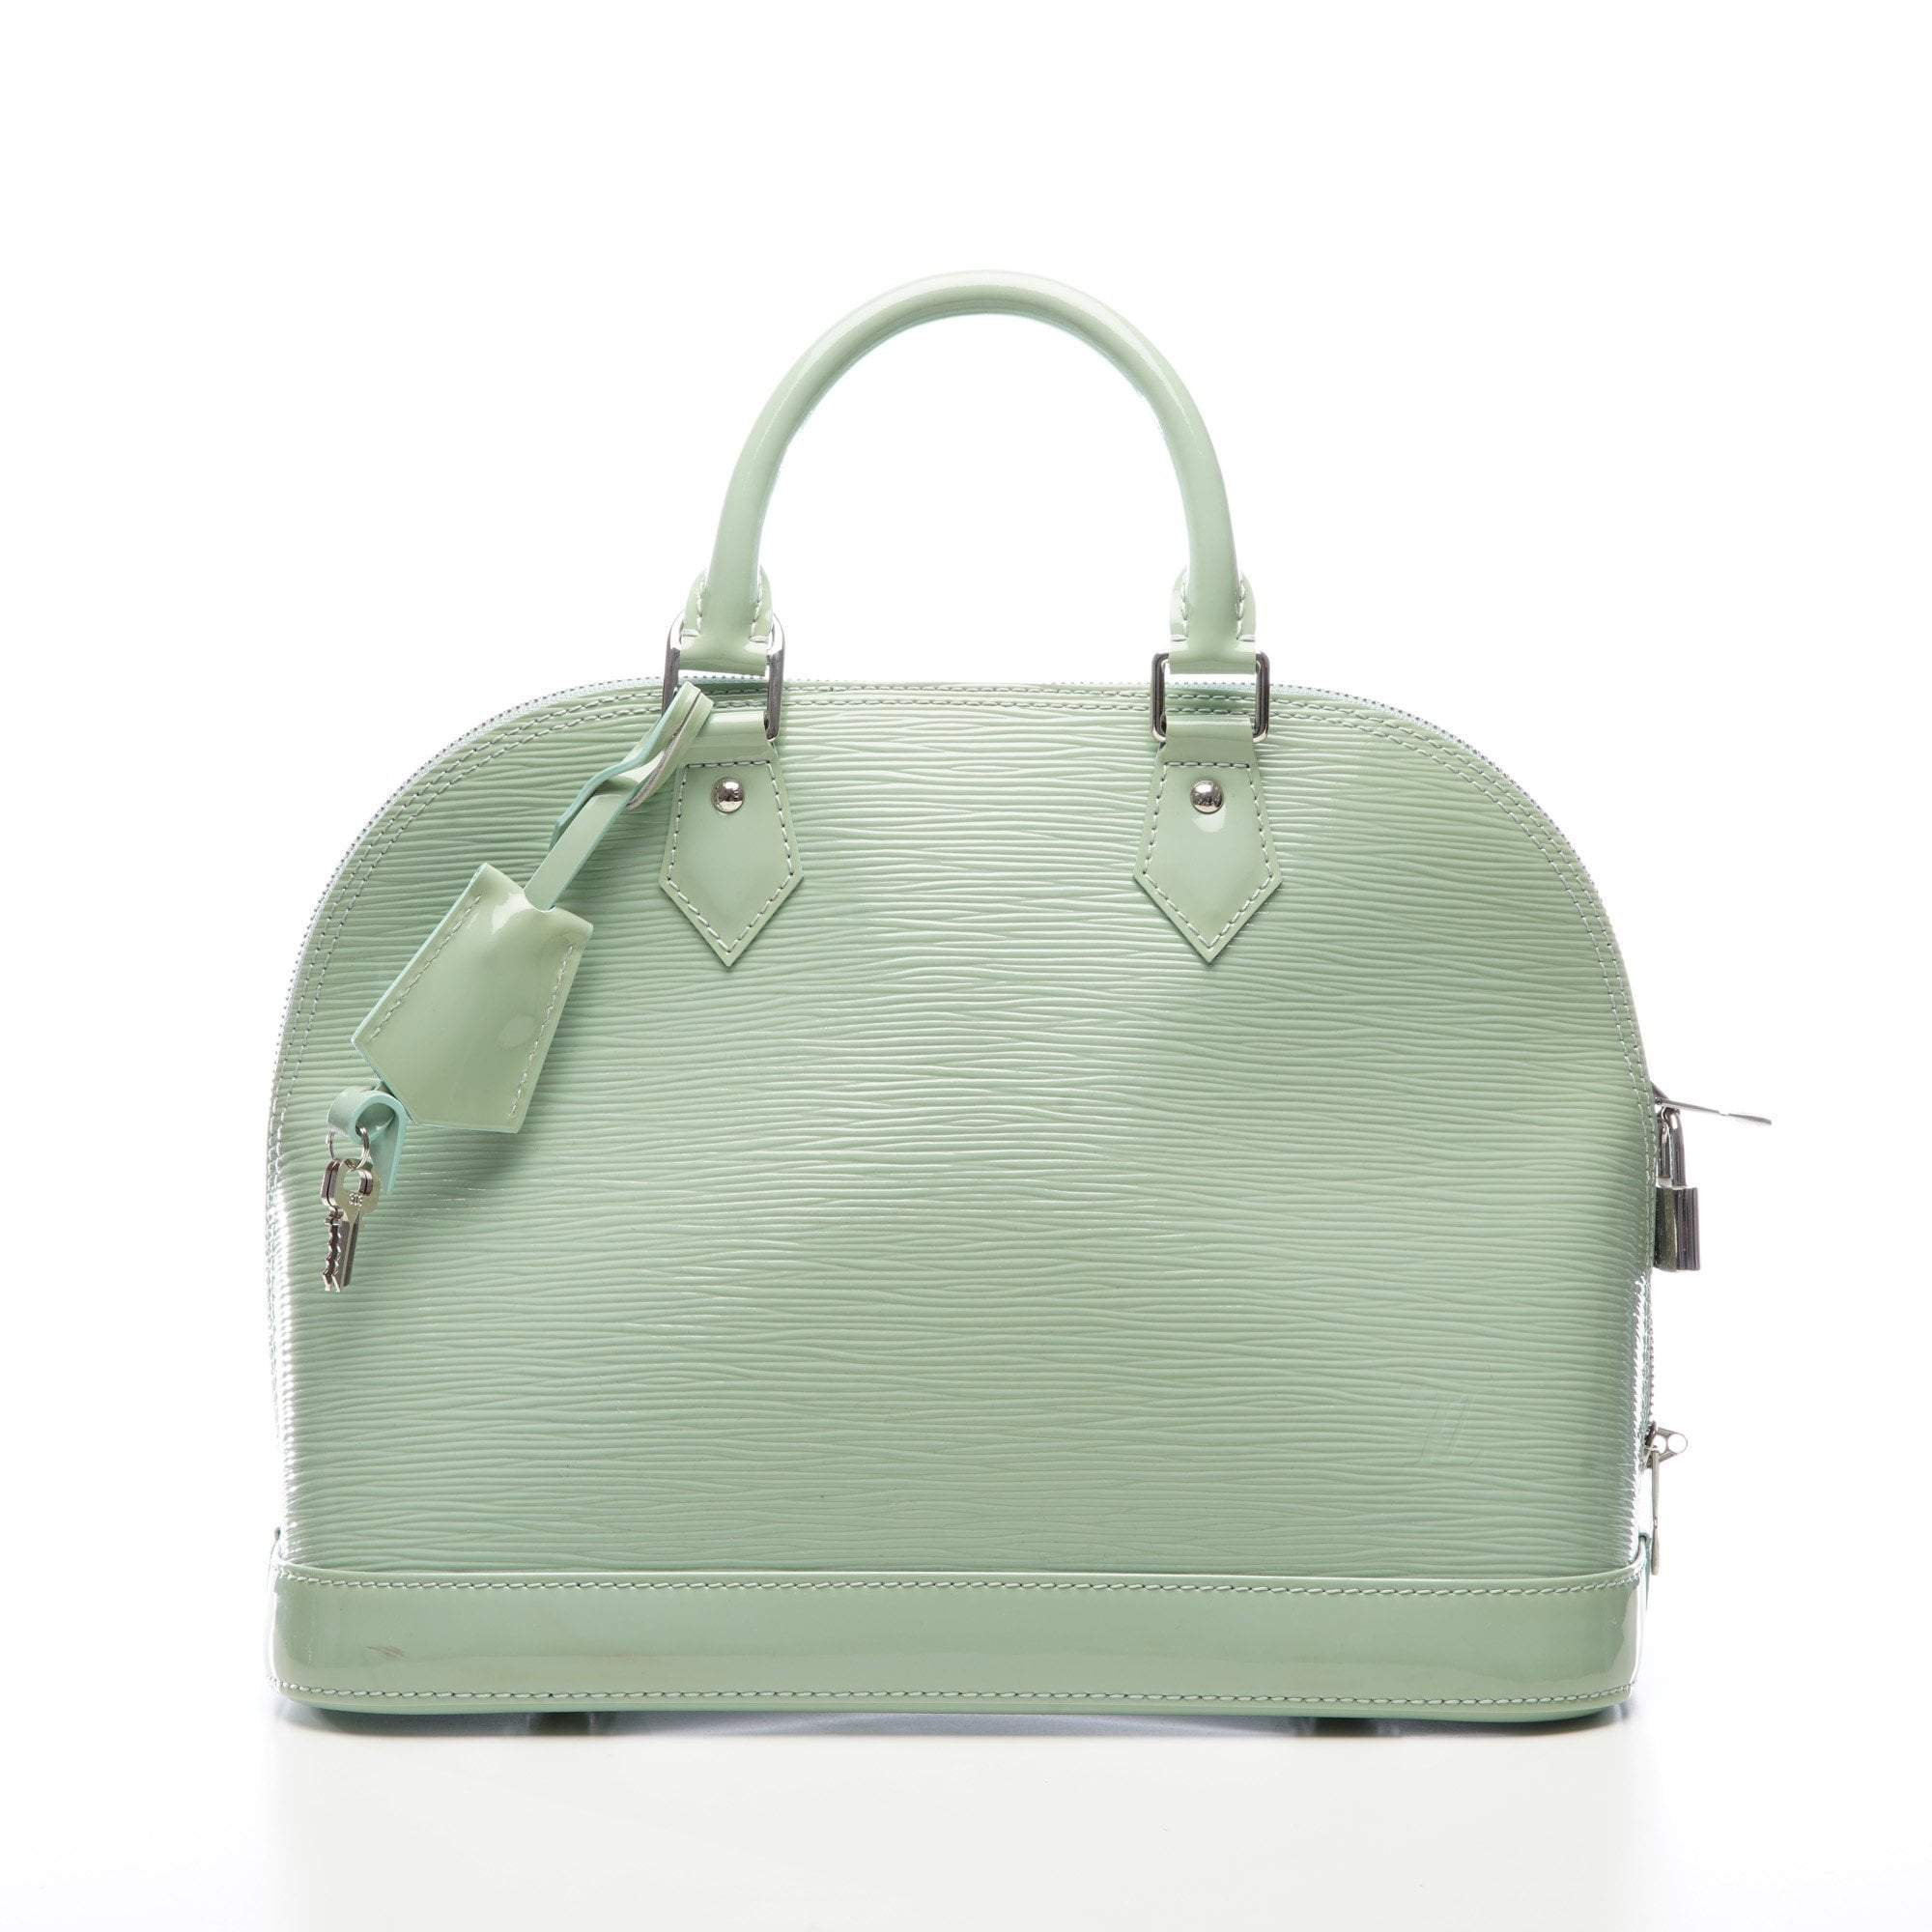 Louis Vuitton Mint Green Alma PM Bag